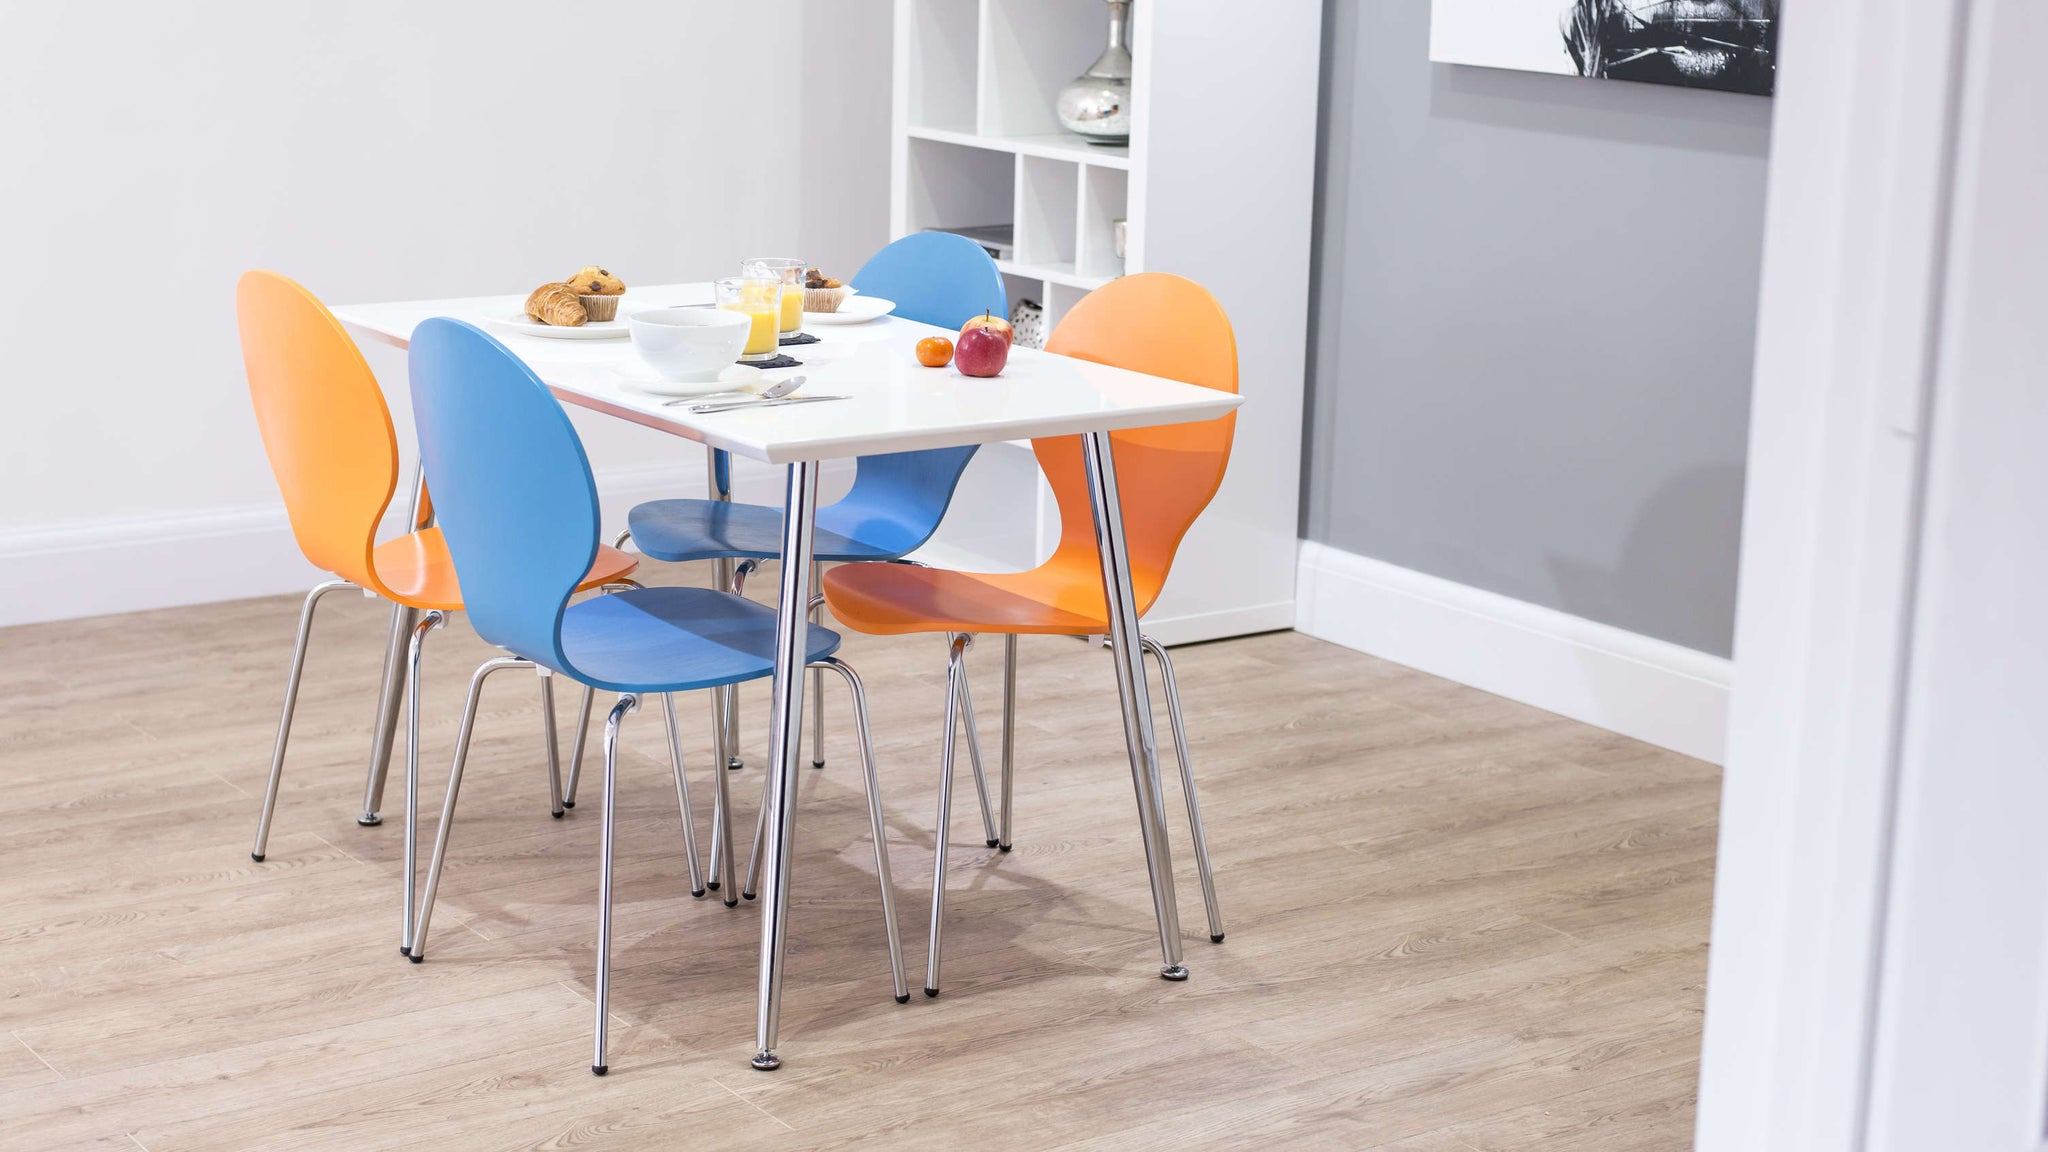 Colourful Dining Chairs and Small Kitchen Table